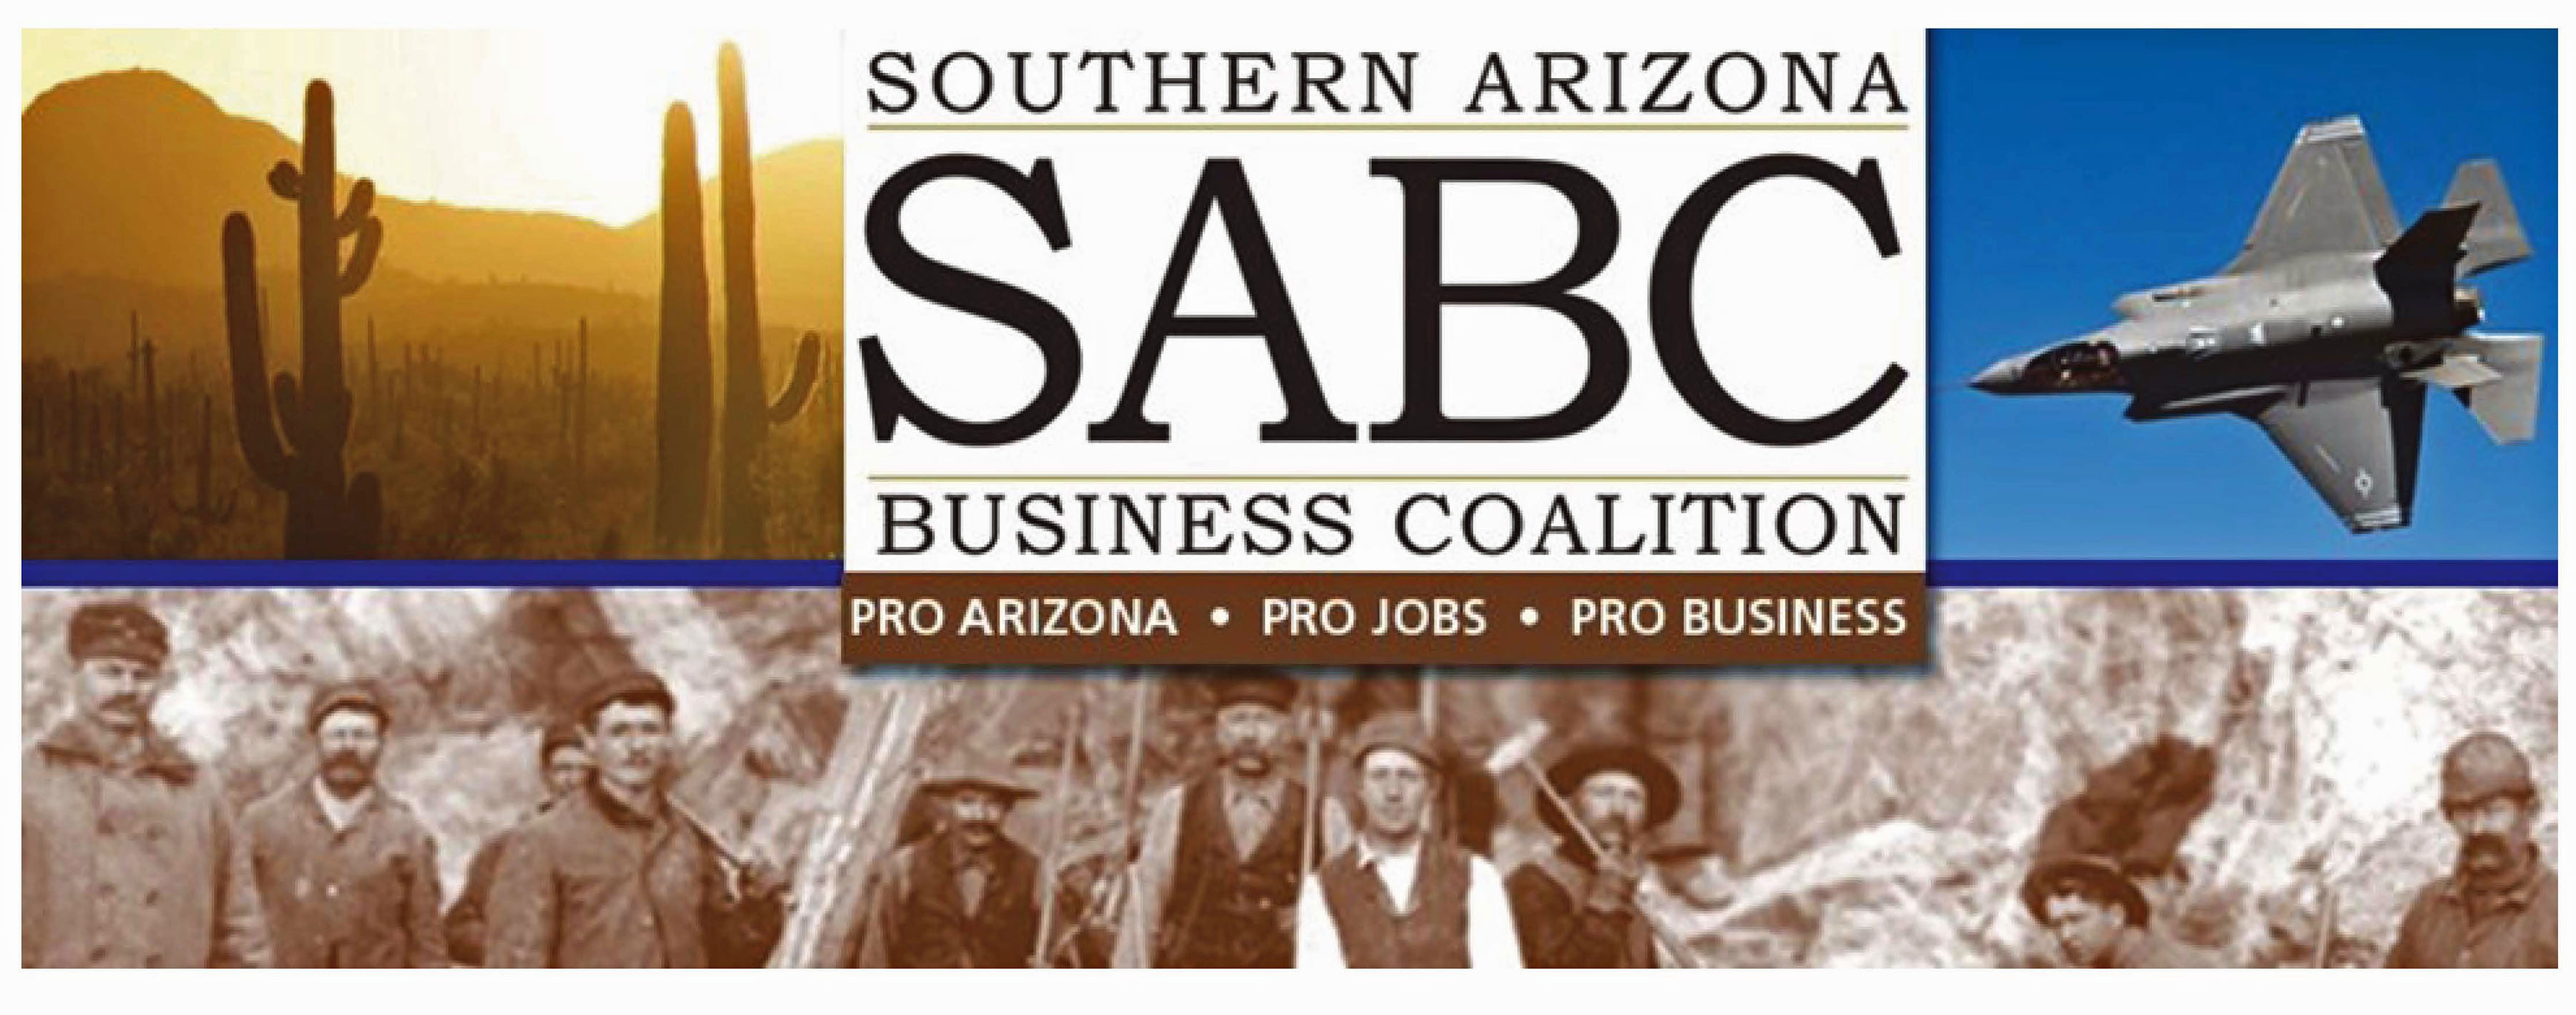 Southern Arizona Business Coalition